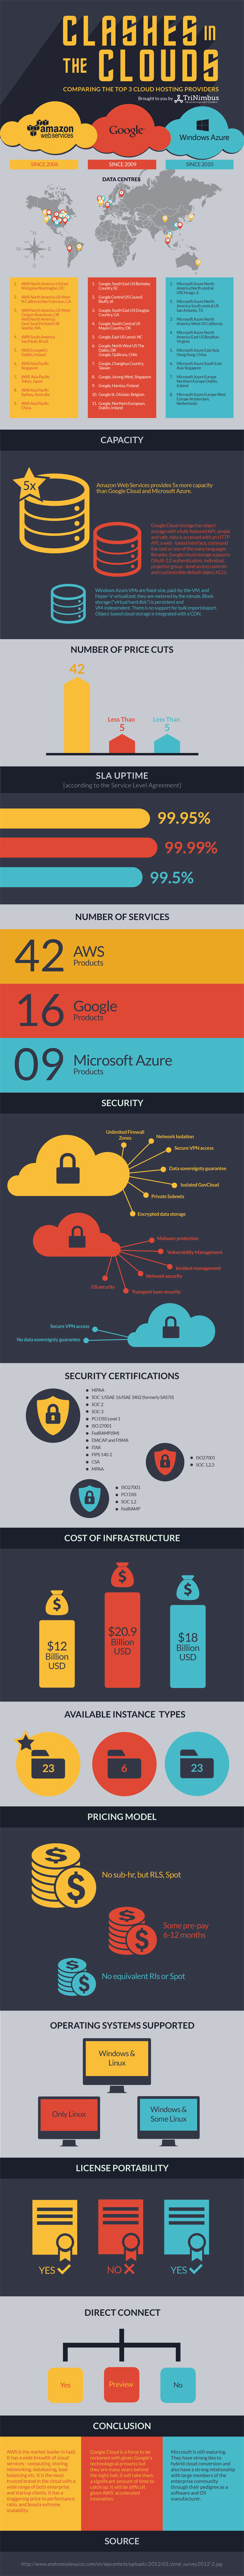 Clashes in the cloud infographic